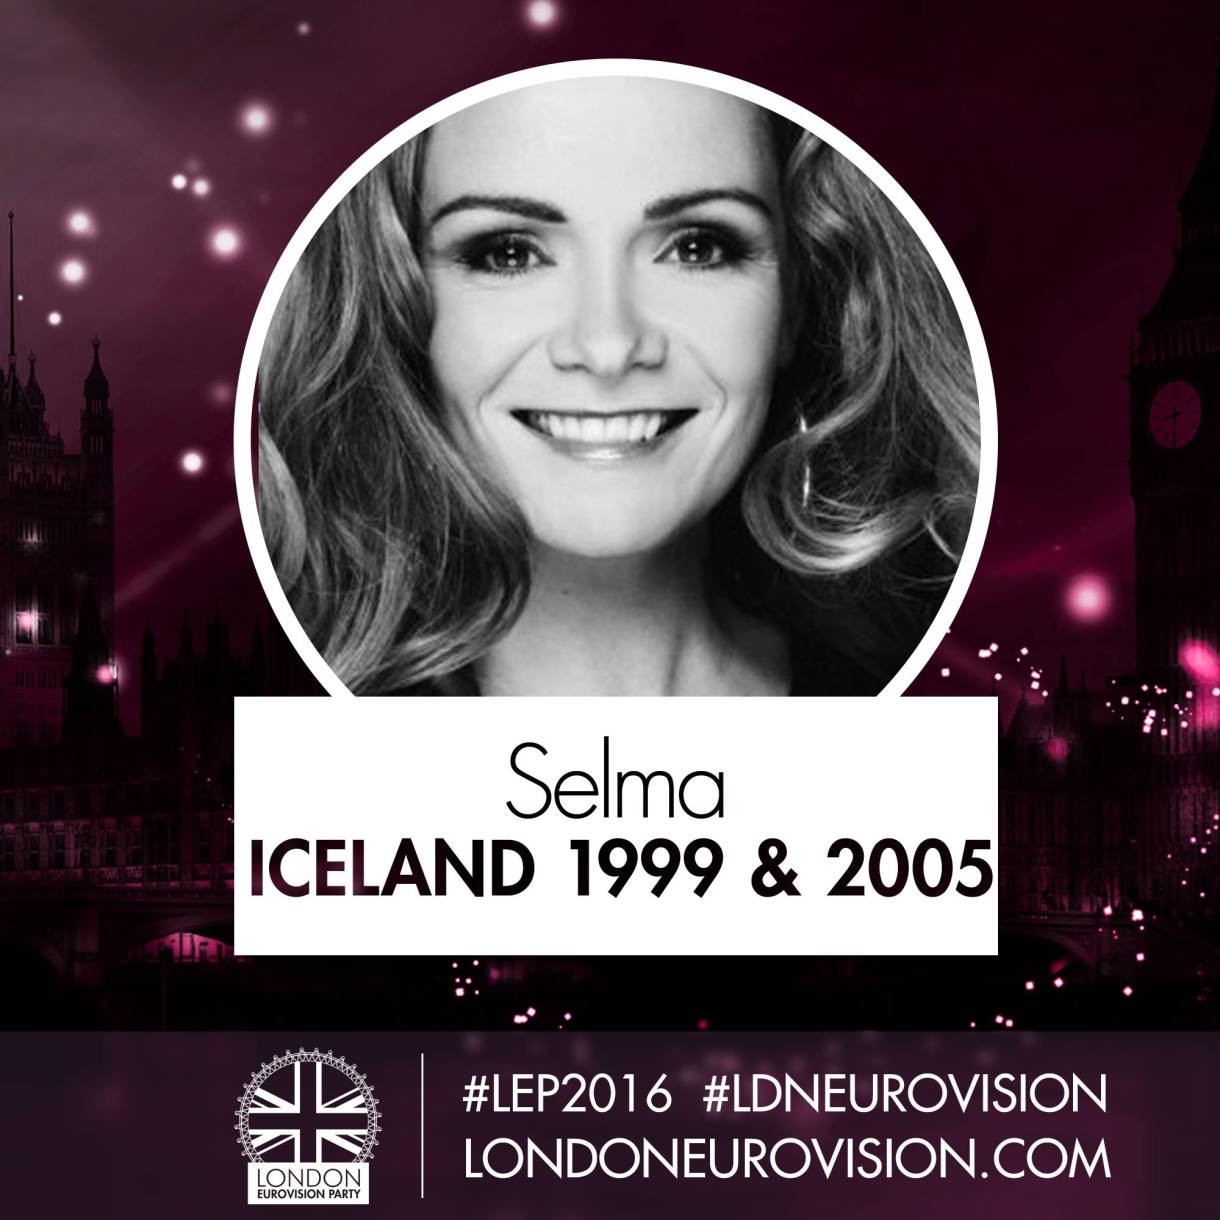 Selma / Iceland 1999 & 2005 - London Eurovision Party